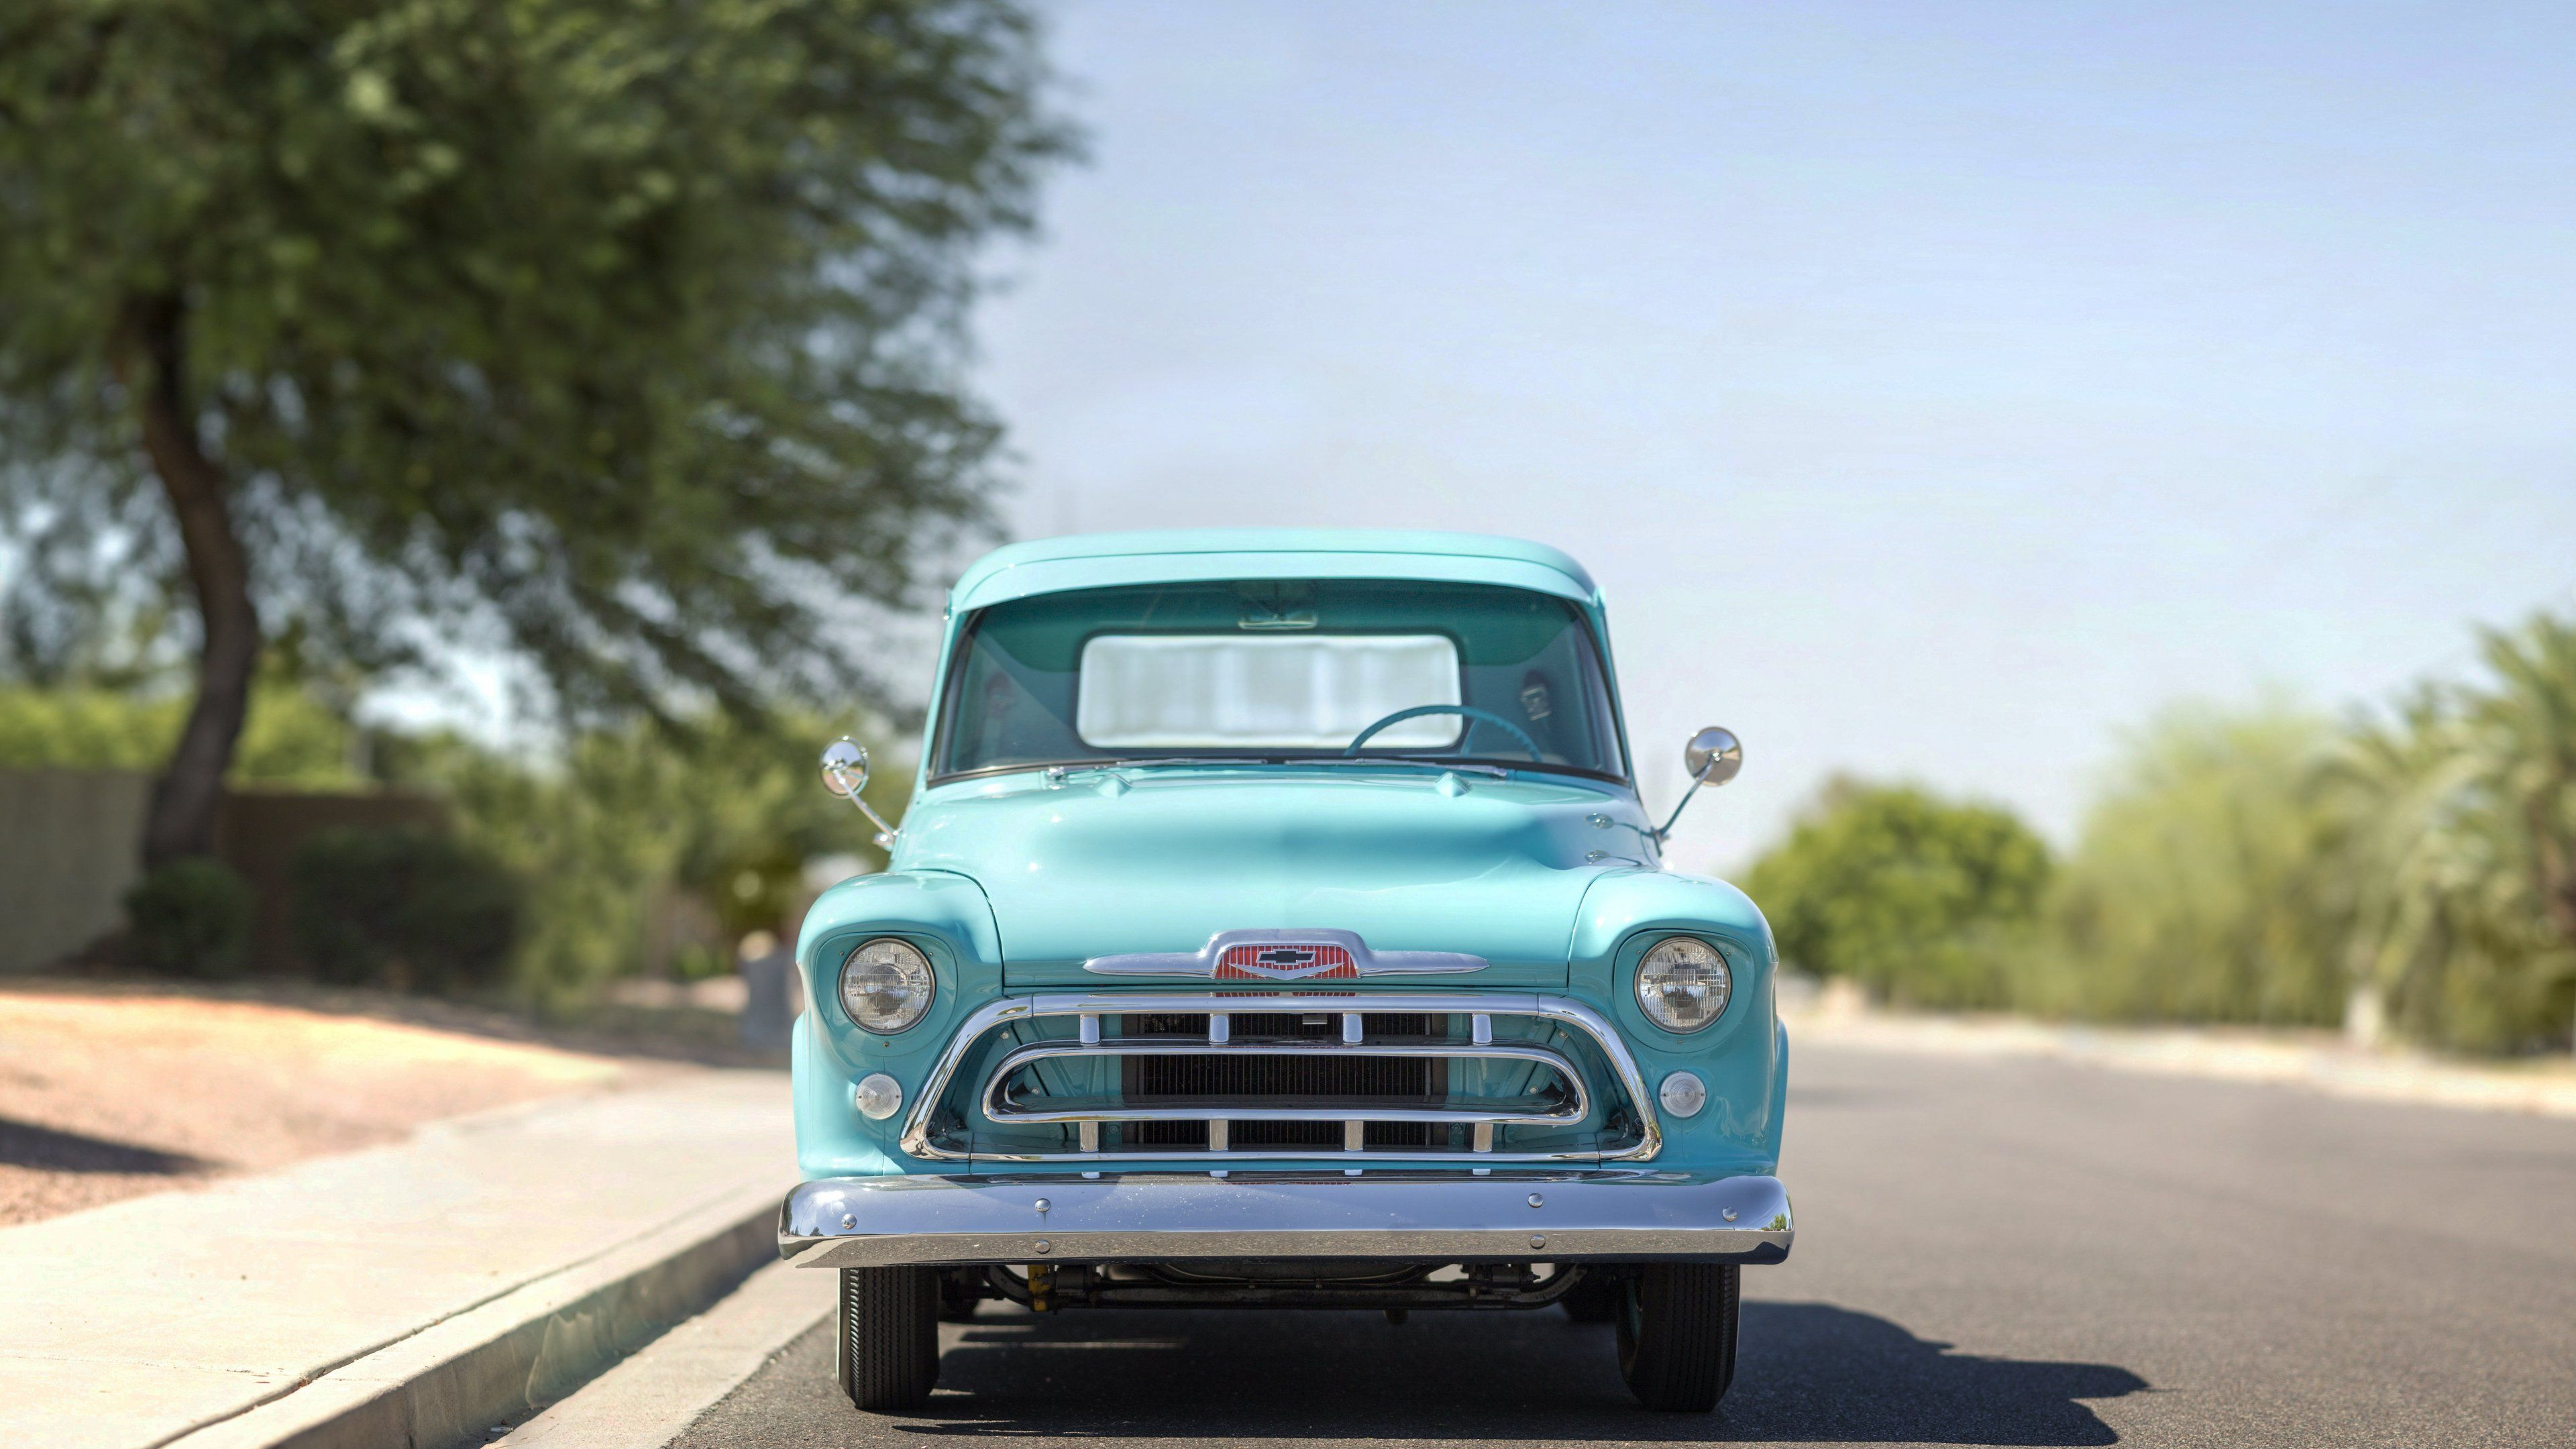 Dfafbbbffdfdecfd Old Car Wallpaper 4k Old Vintage Cars Chevy Classic Vintage Cars